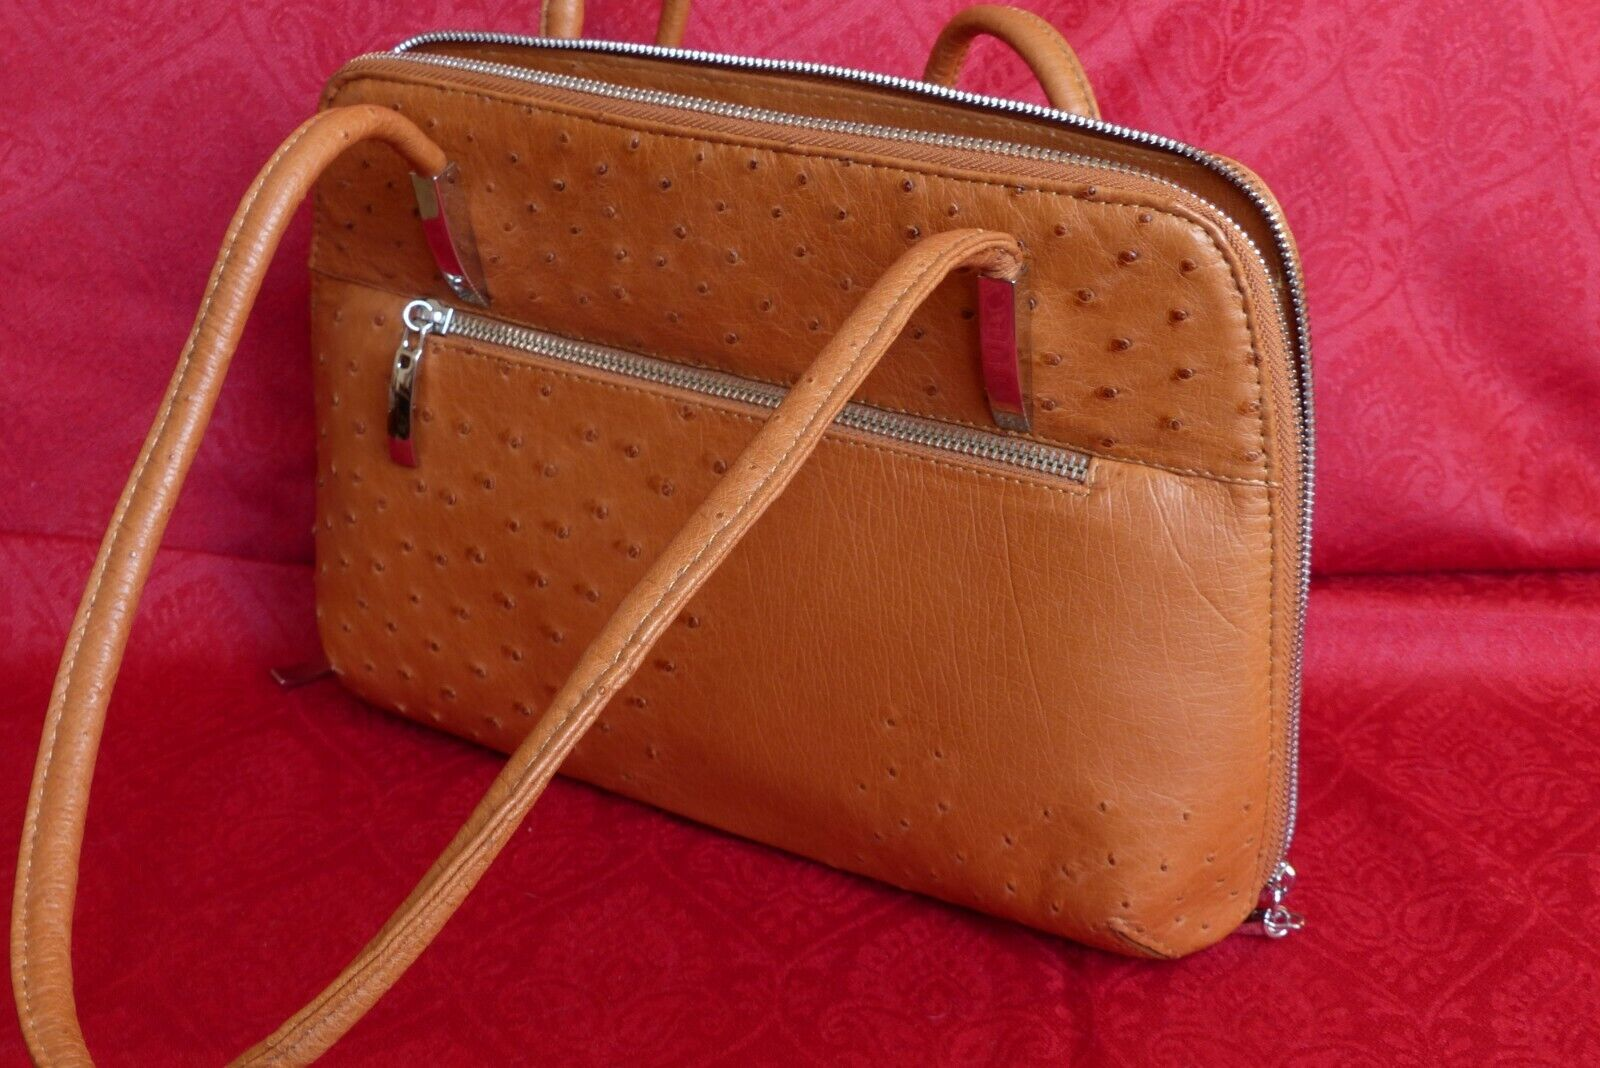 Sac a main en cuir d'autruche gold façon hermes made in south africa